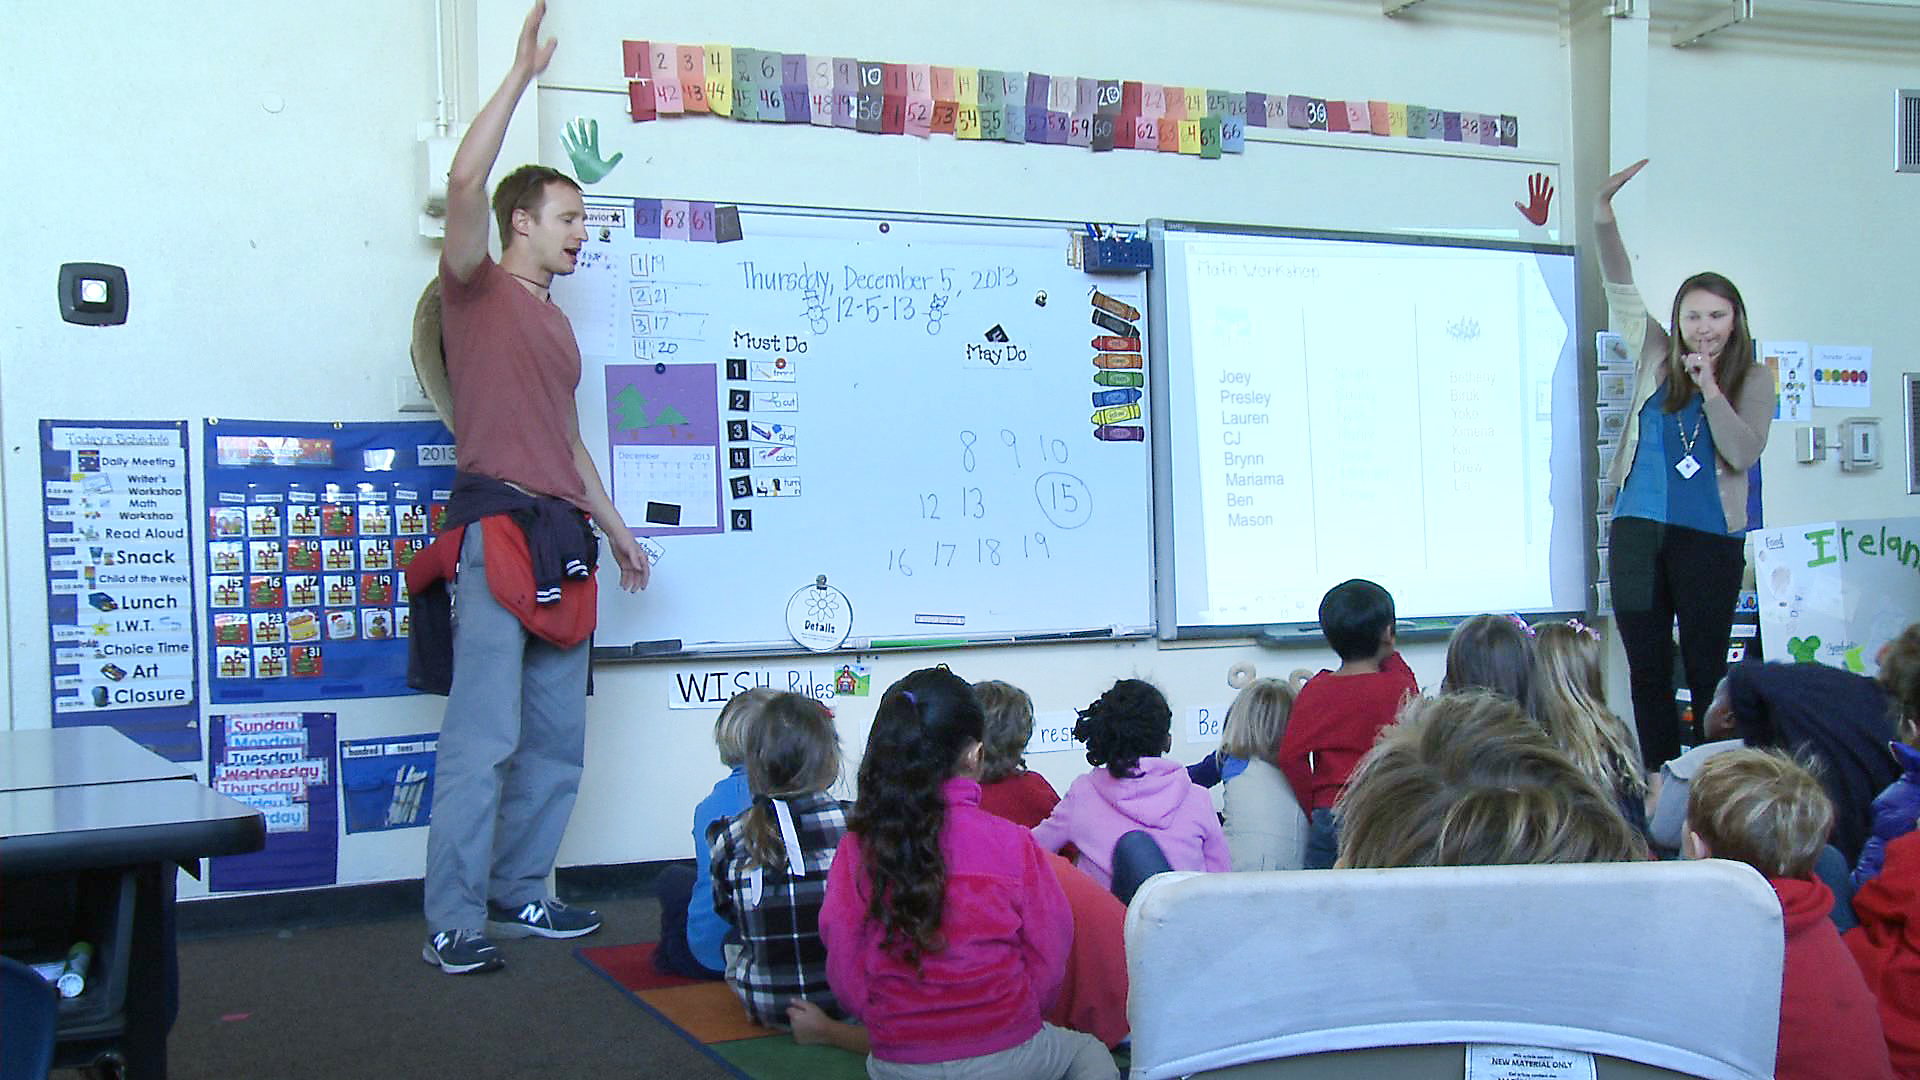 Students sitting in front of a white board and two teachers each raising a hand